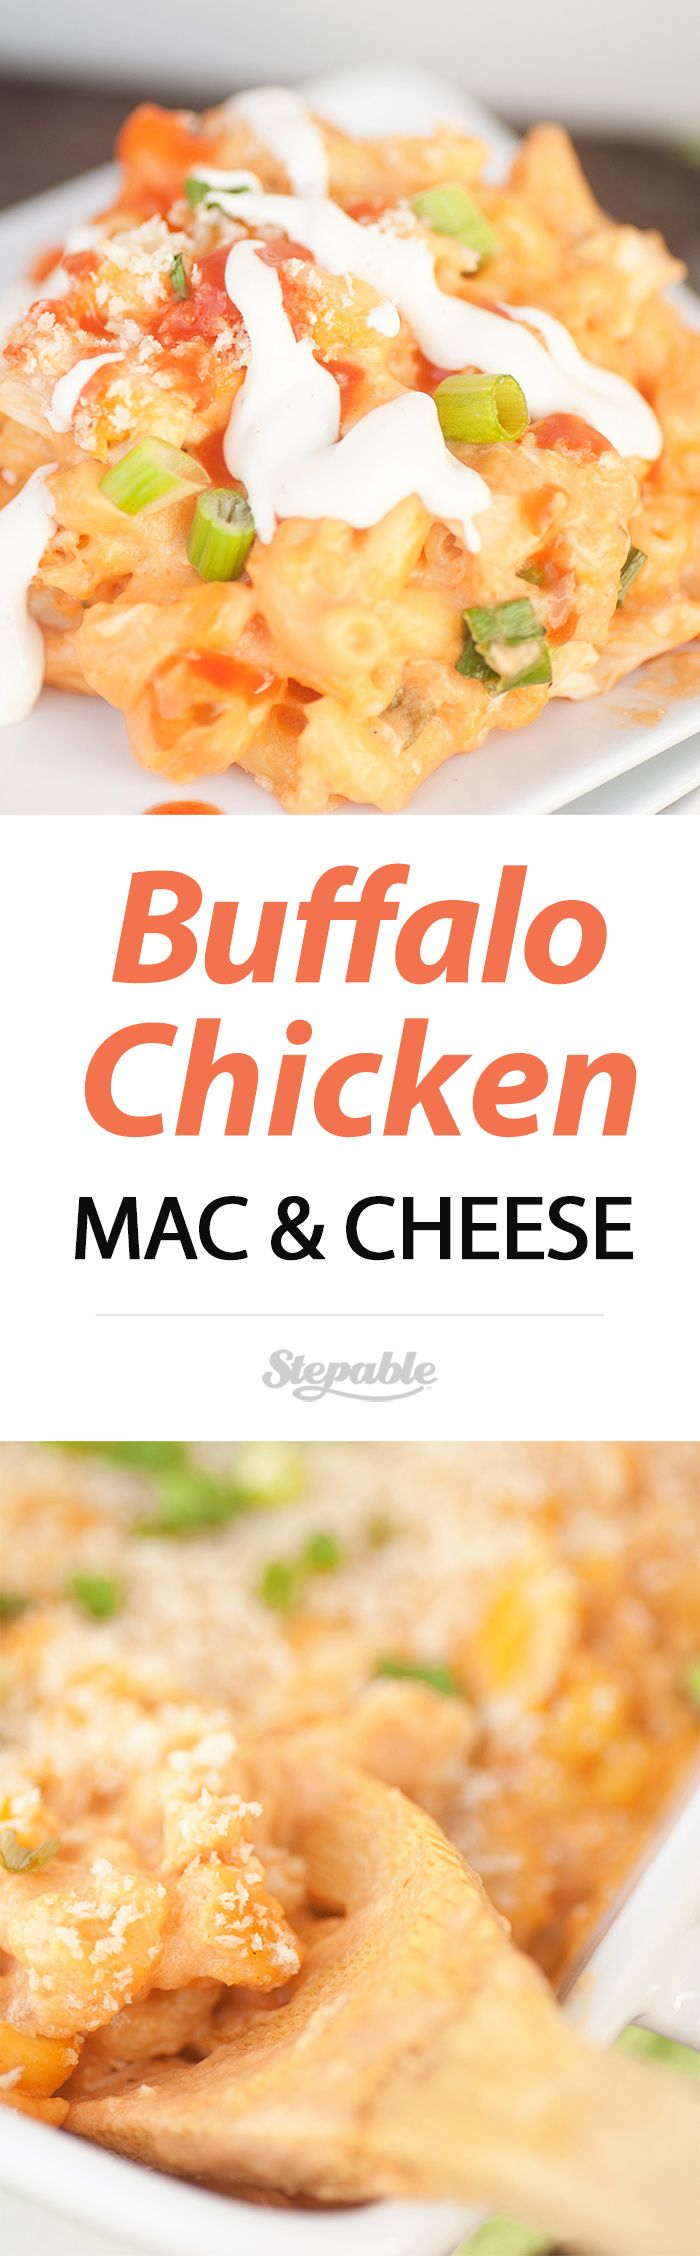 This is such an easy recipe that will shake up a boring dinner routine. I like to serve this with a drizzle of extra hot sauce and a hint of ranch dressing. So good!! @stepable #recipes